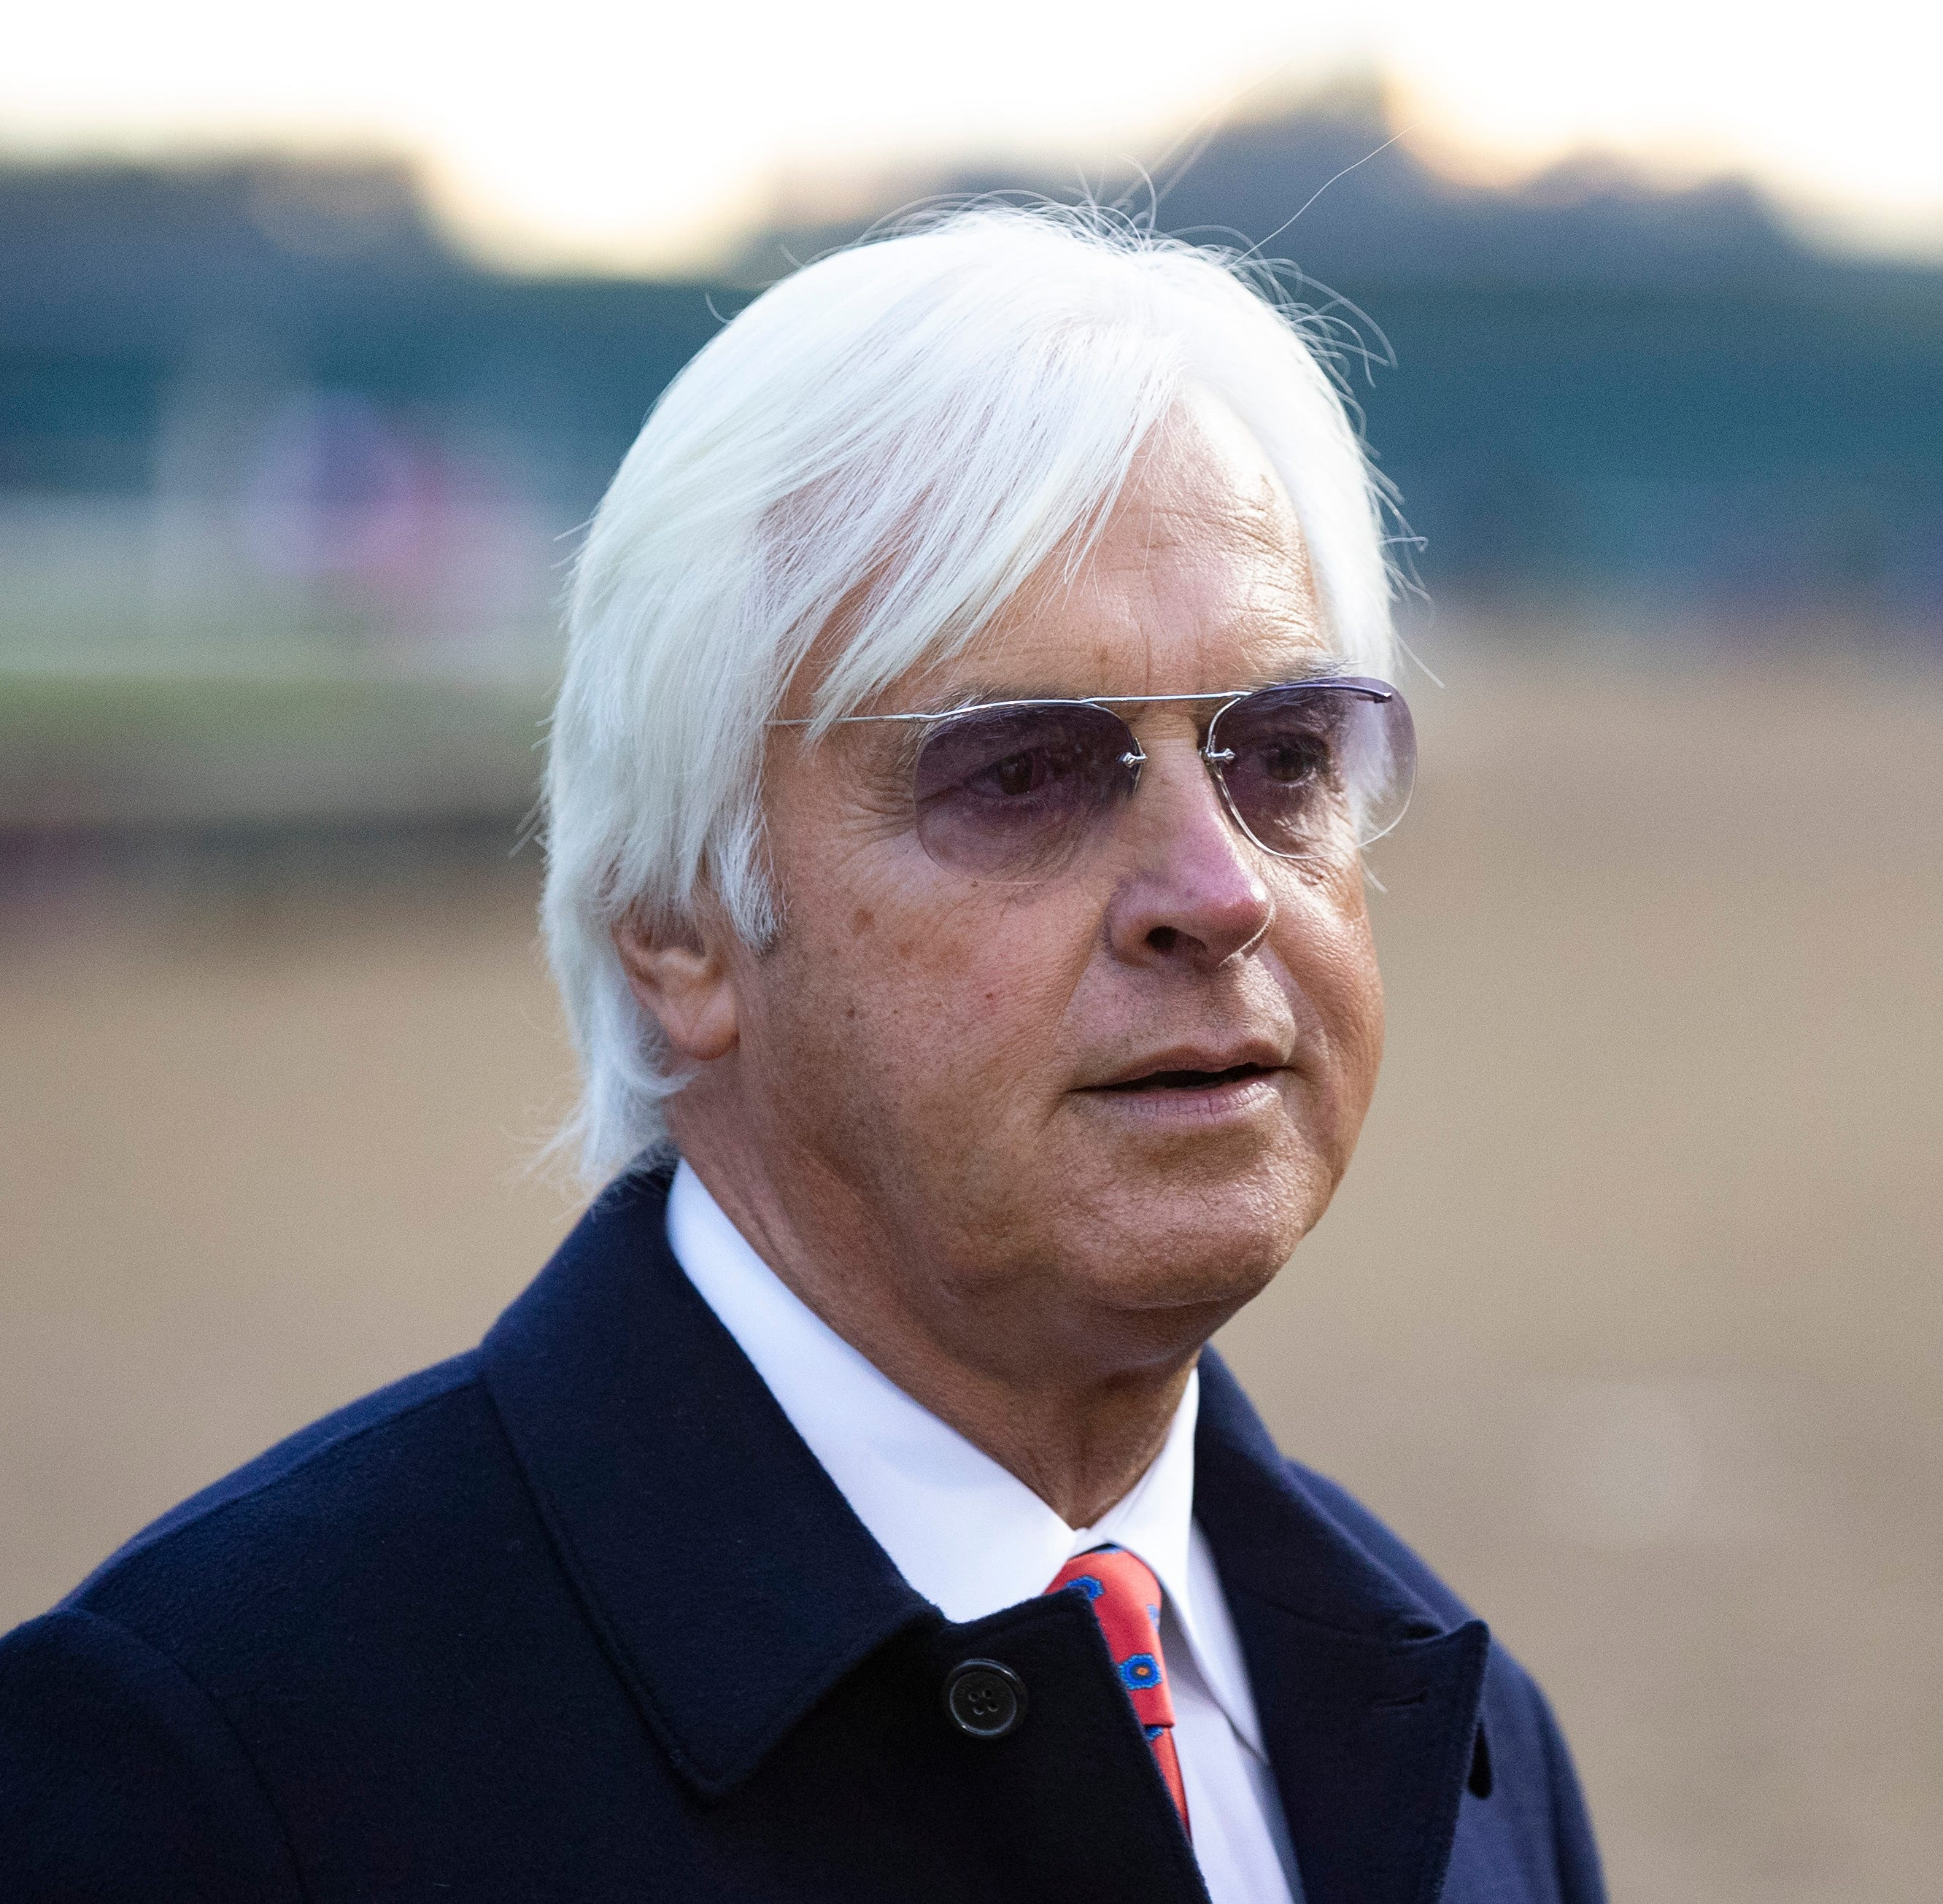 Bob Baffert on Santa Anita horse deaths: 'Hopefully we're moving forward'